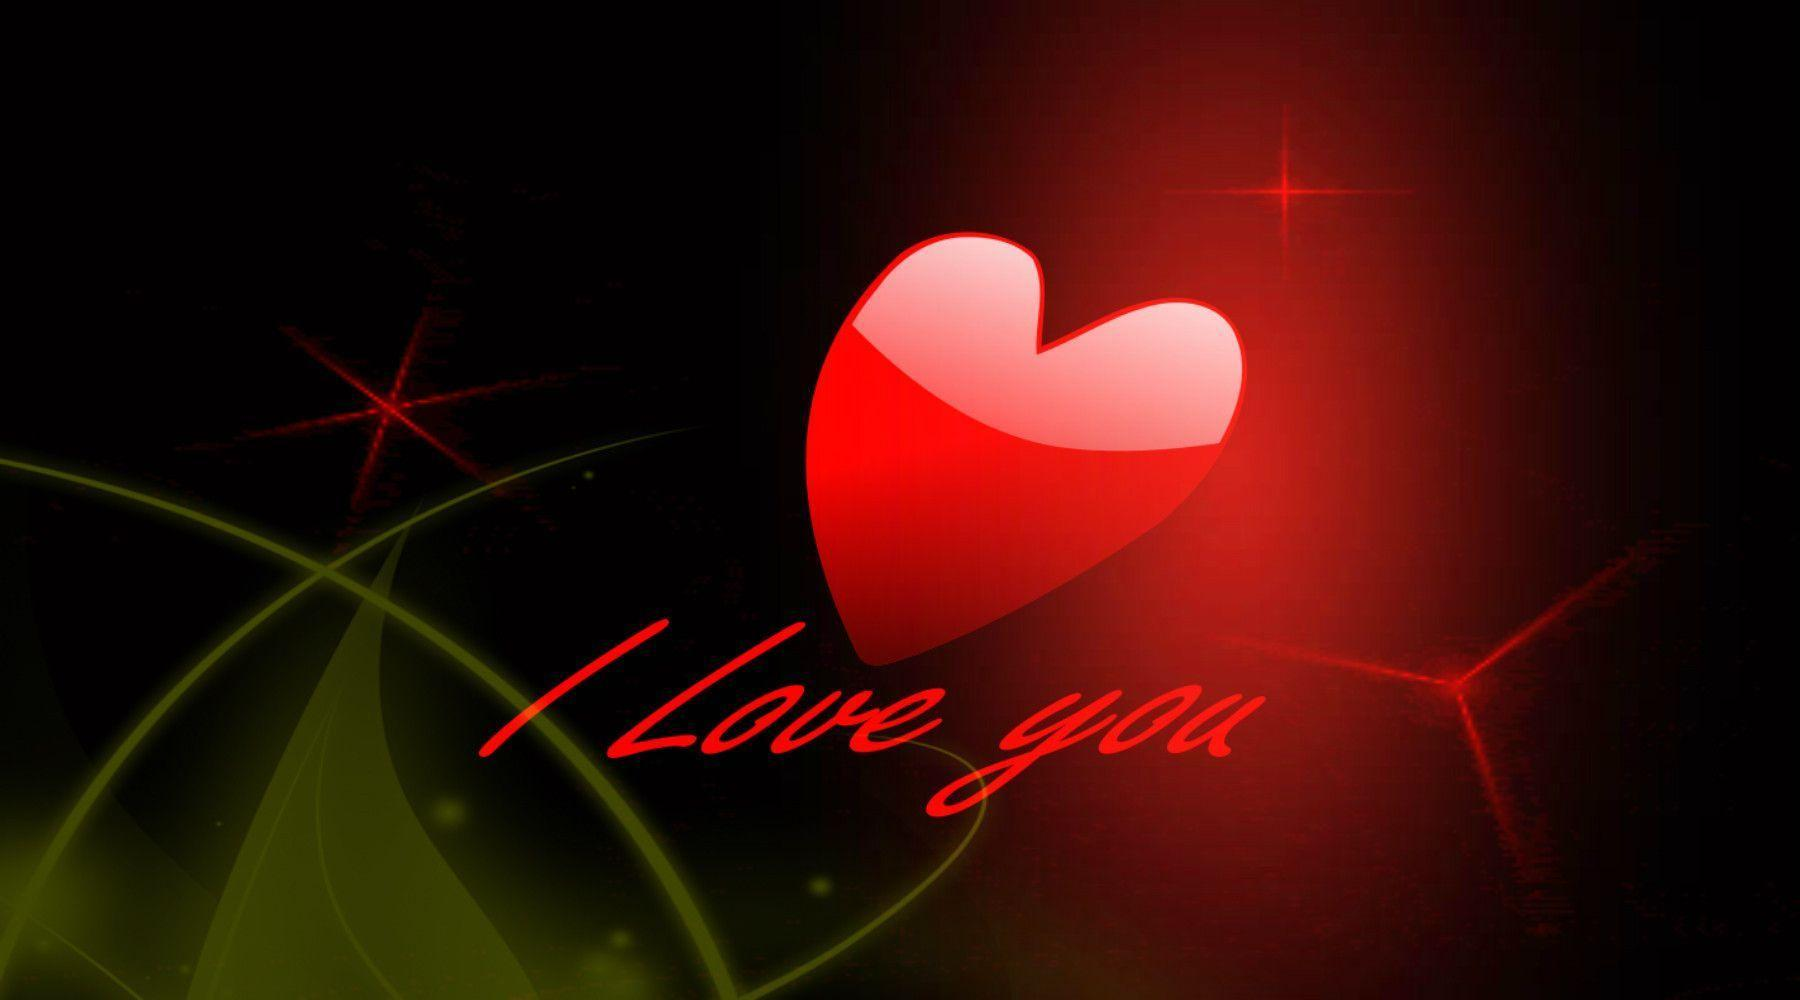 Love Wallpapers Awesome : I Love You Wallpapers - Wallpaper cave